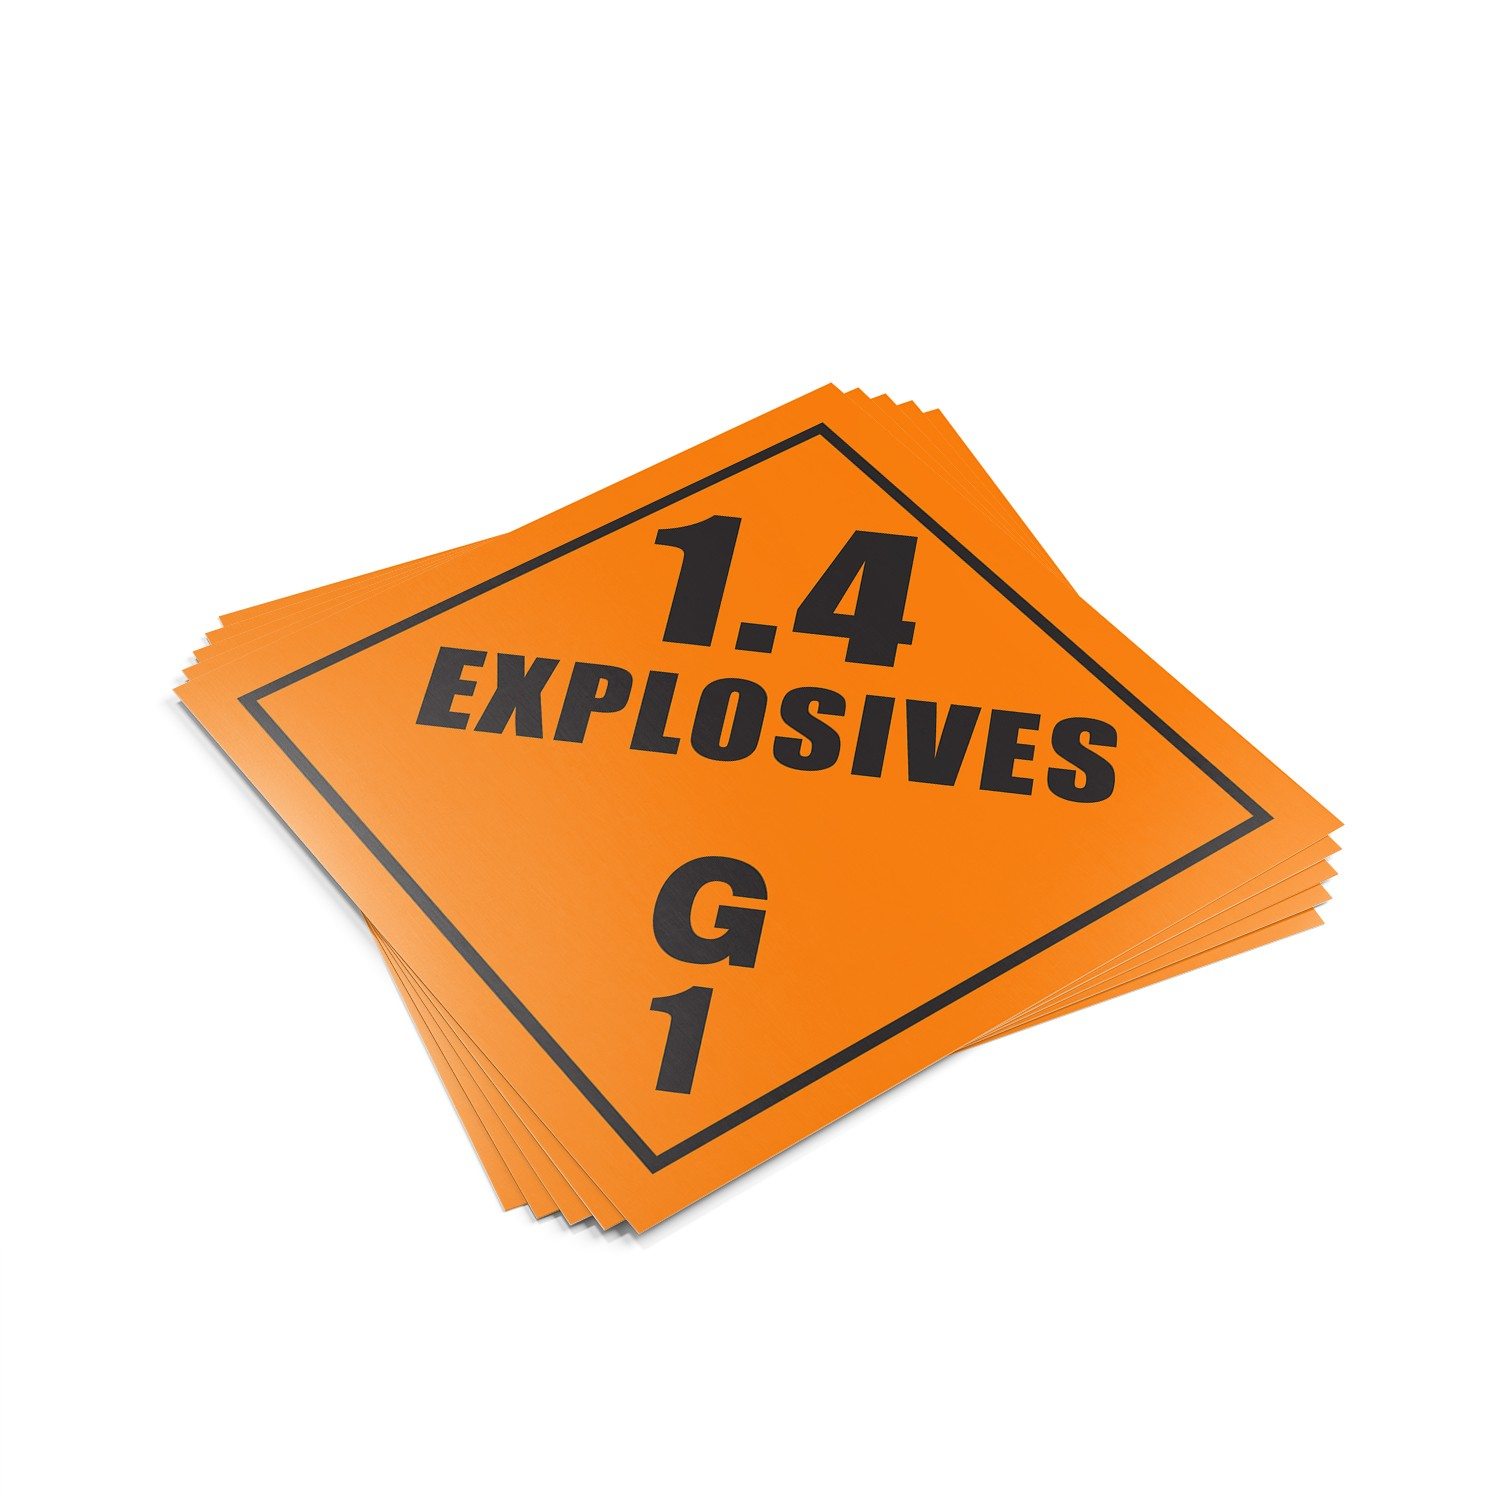 "TOTALPACK® 10 3/4 x 10 3/4"" - Placard ""Explosives 1.4 G"" 25 Units"